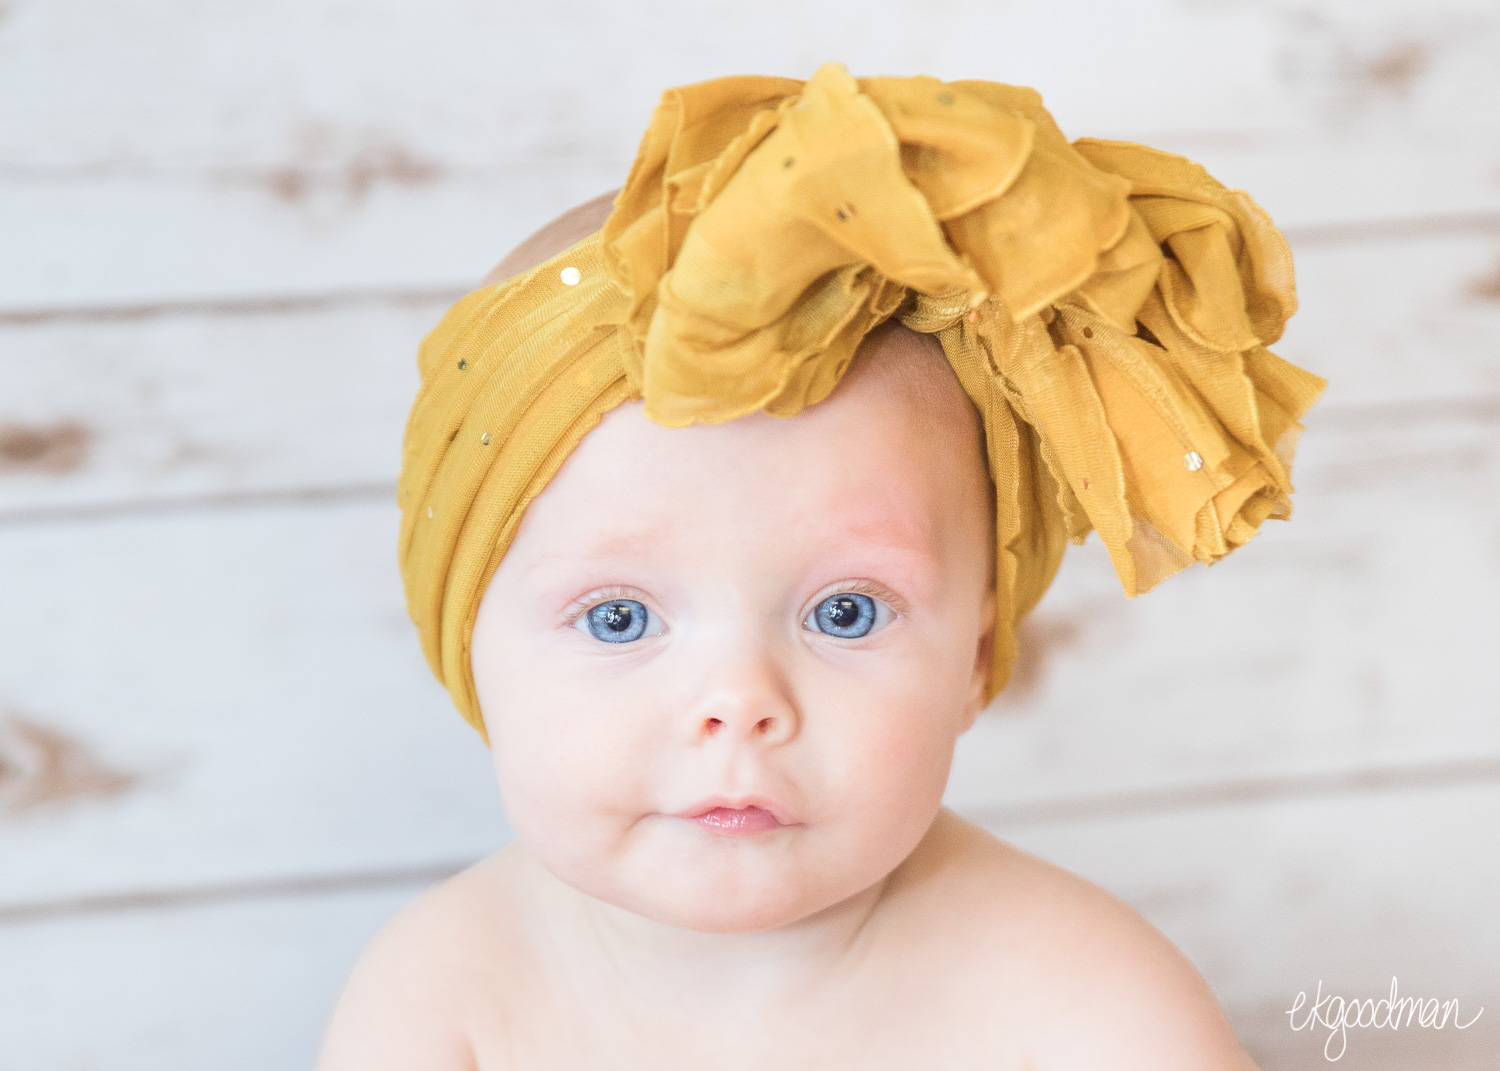 Six months just disappear - A baby milestone to commemorate the first year